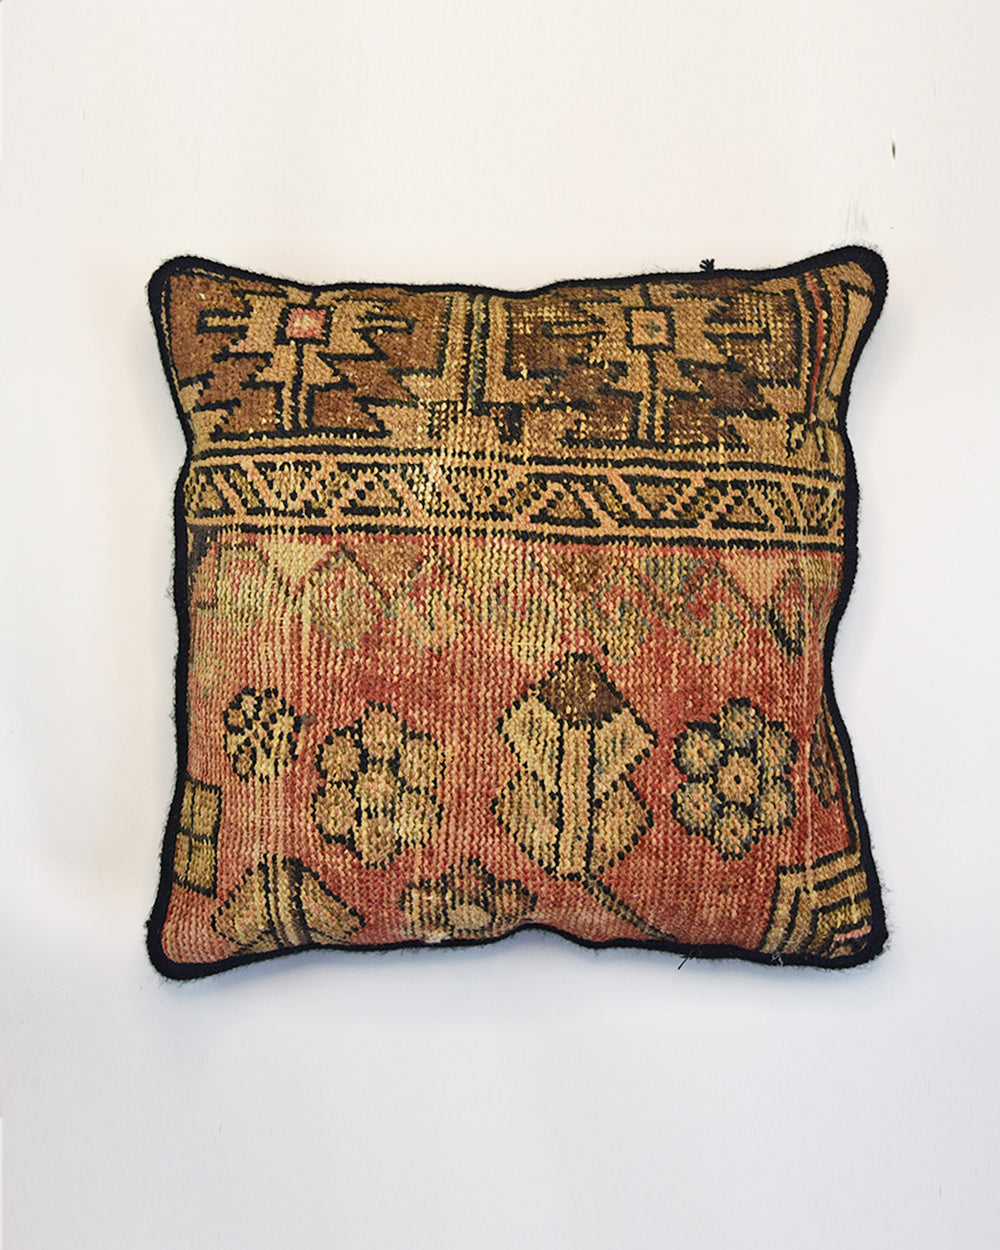 Cushion Cover No. 24